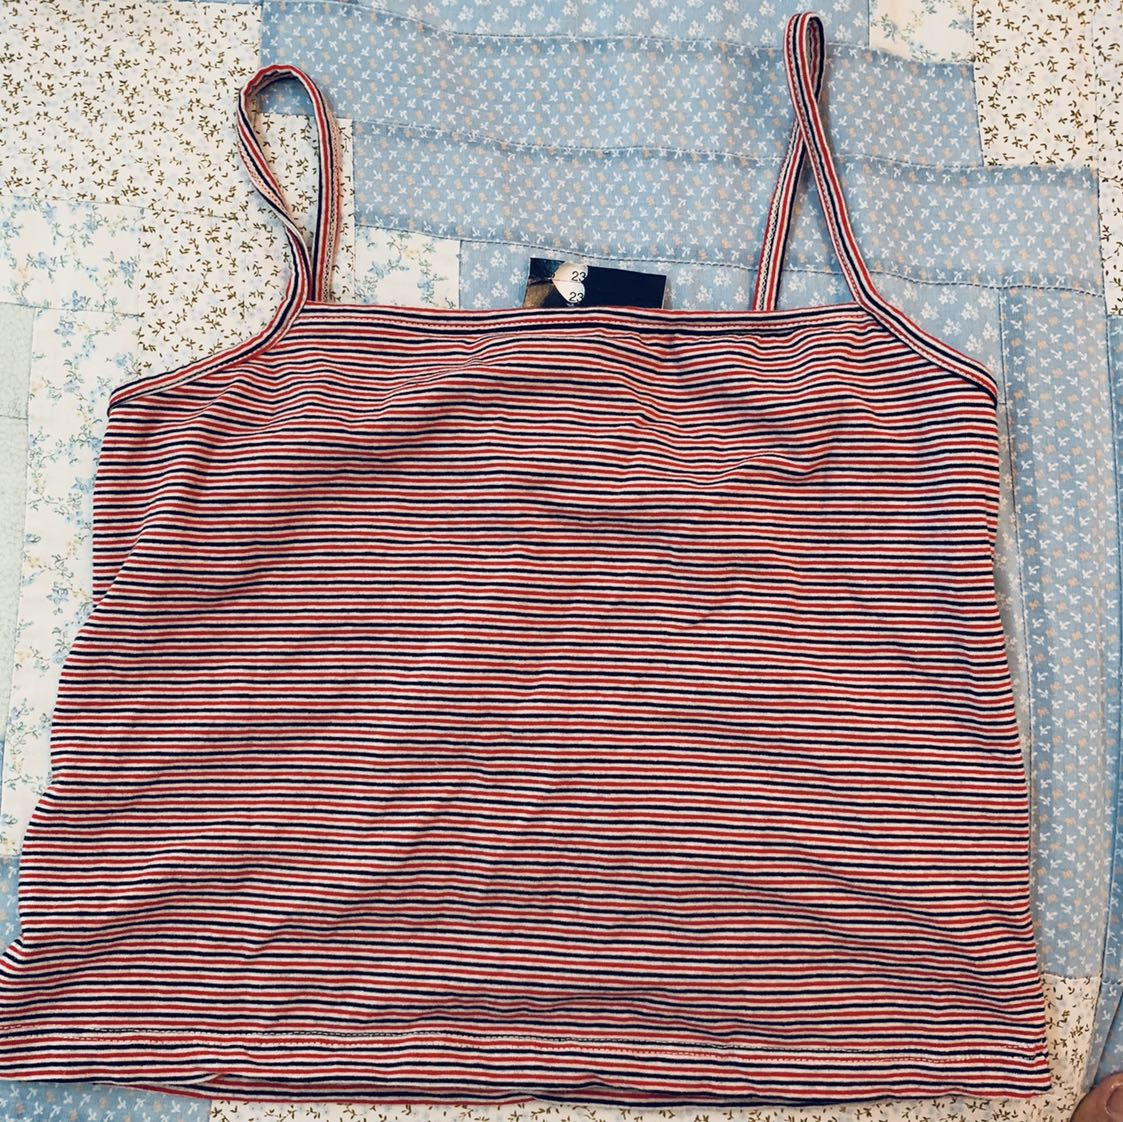 a37a276ec2532c Bnwt brandy Melville red navy blue and white striped Faye square ...